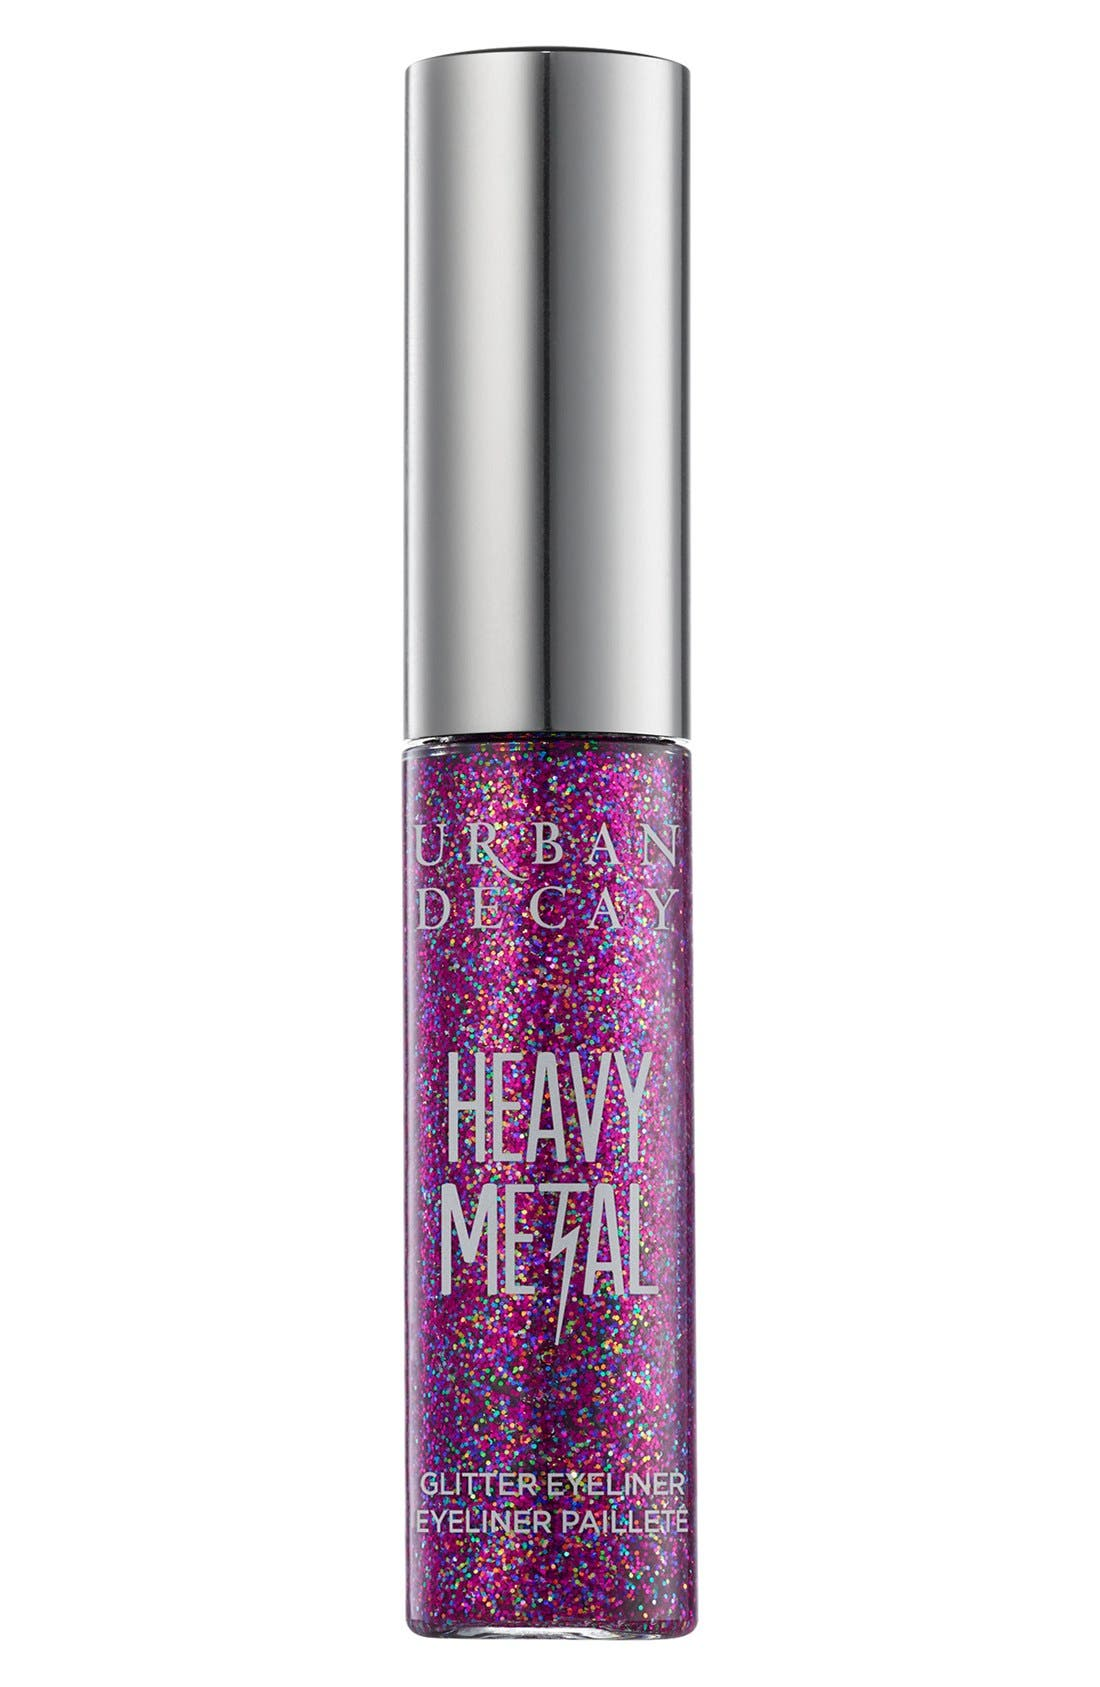 Urban Decay 'Heavy Metal' Glitter Eyeliner